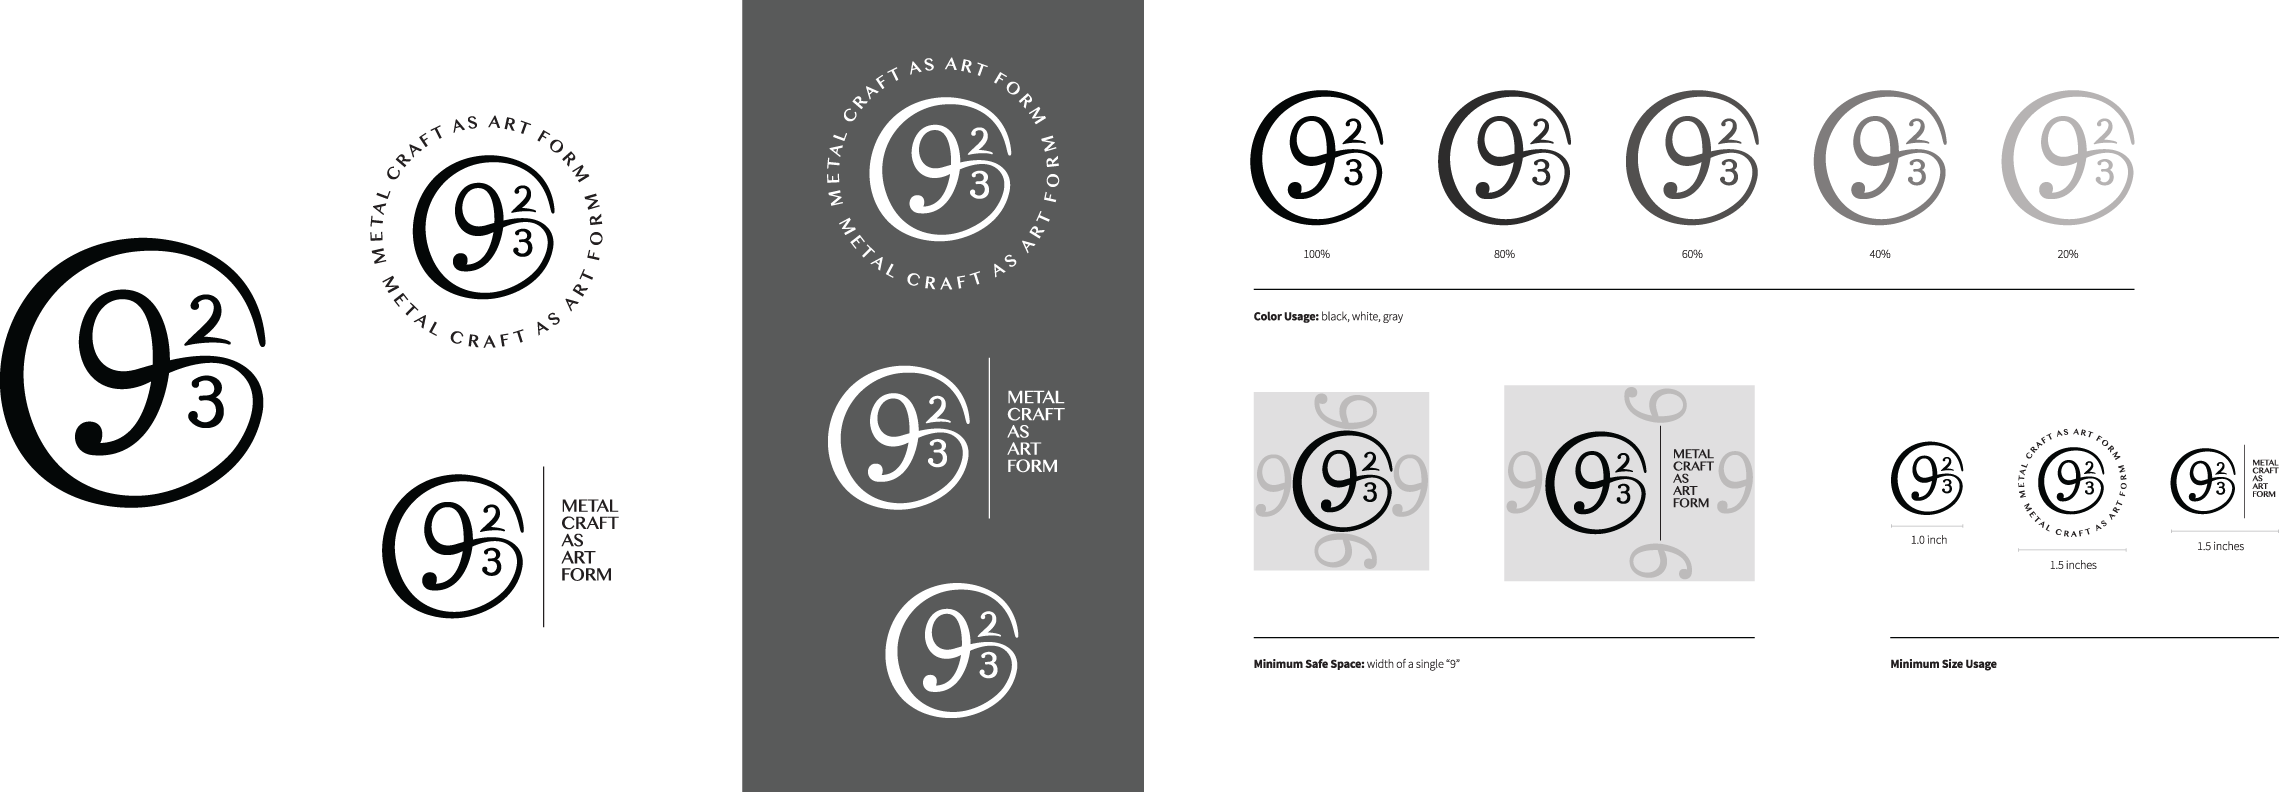 This is a very simple logo usage guide I created for a recent client. More complex branding guidelines include information about color, typography, imagery, marketing copy, and more.